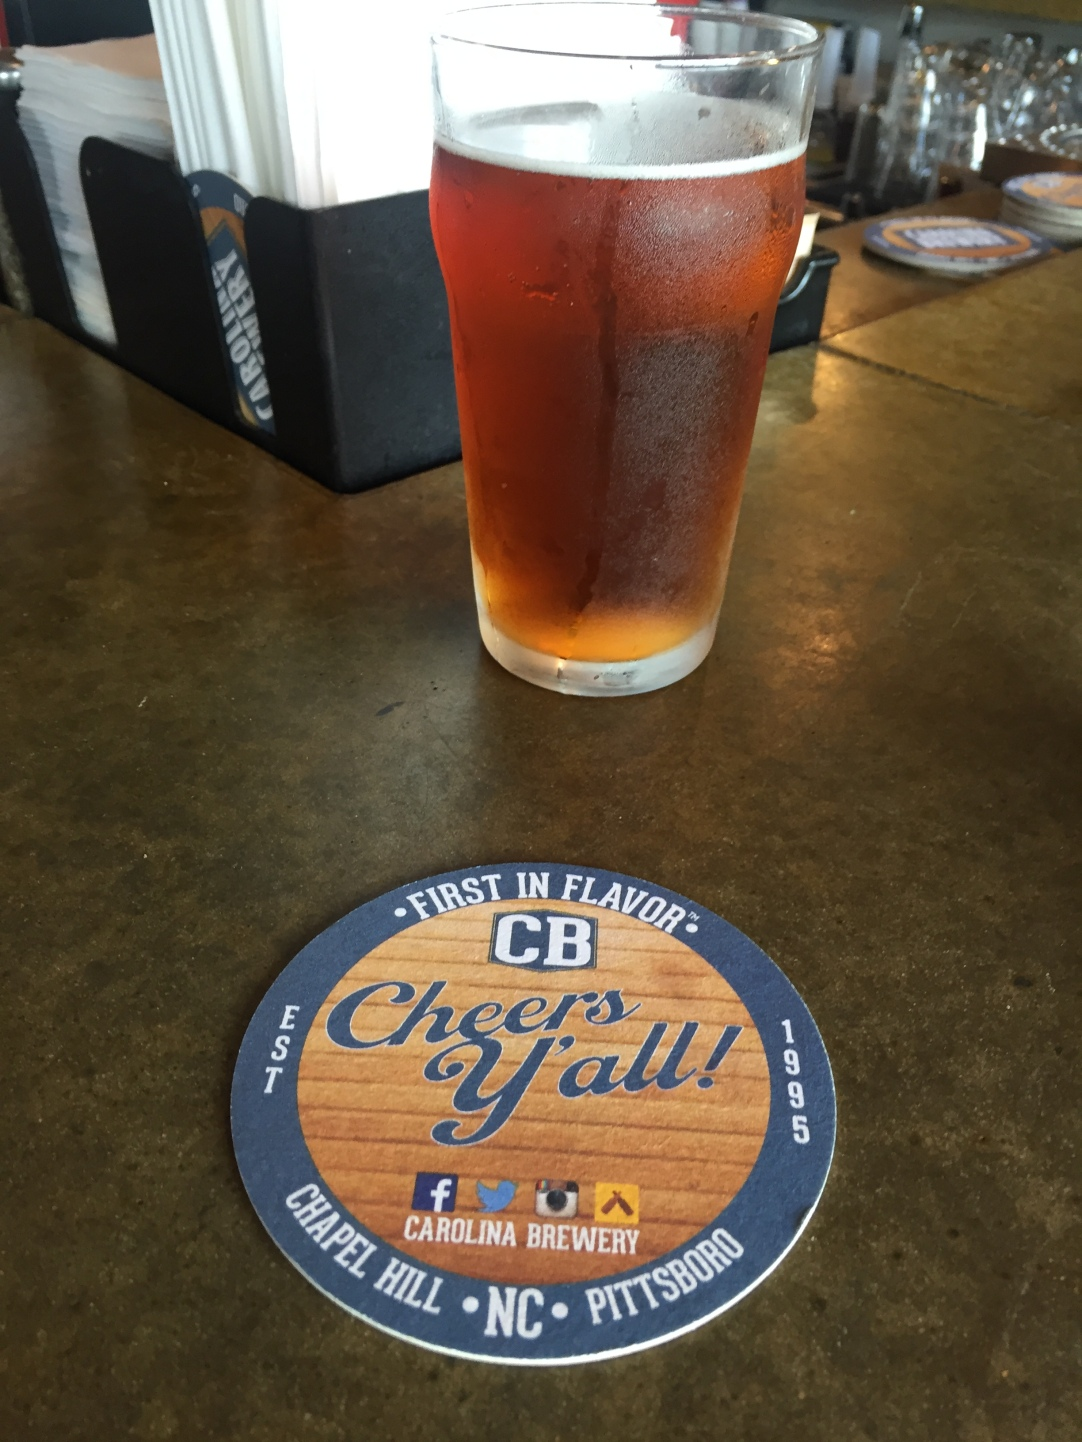 Carolina Brewery Coaster and Beer